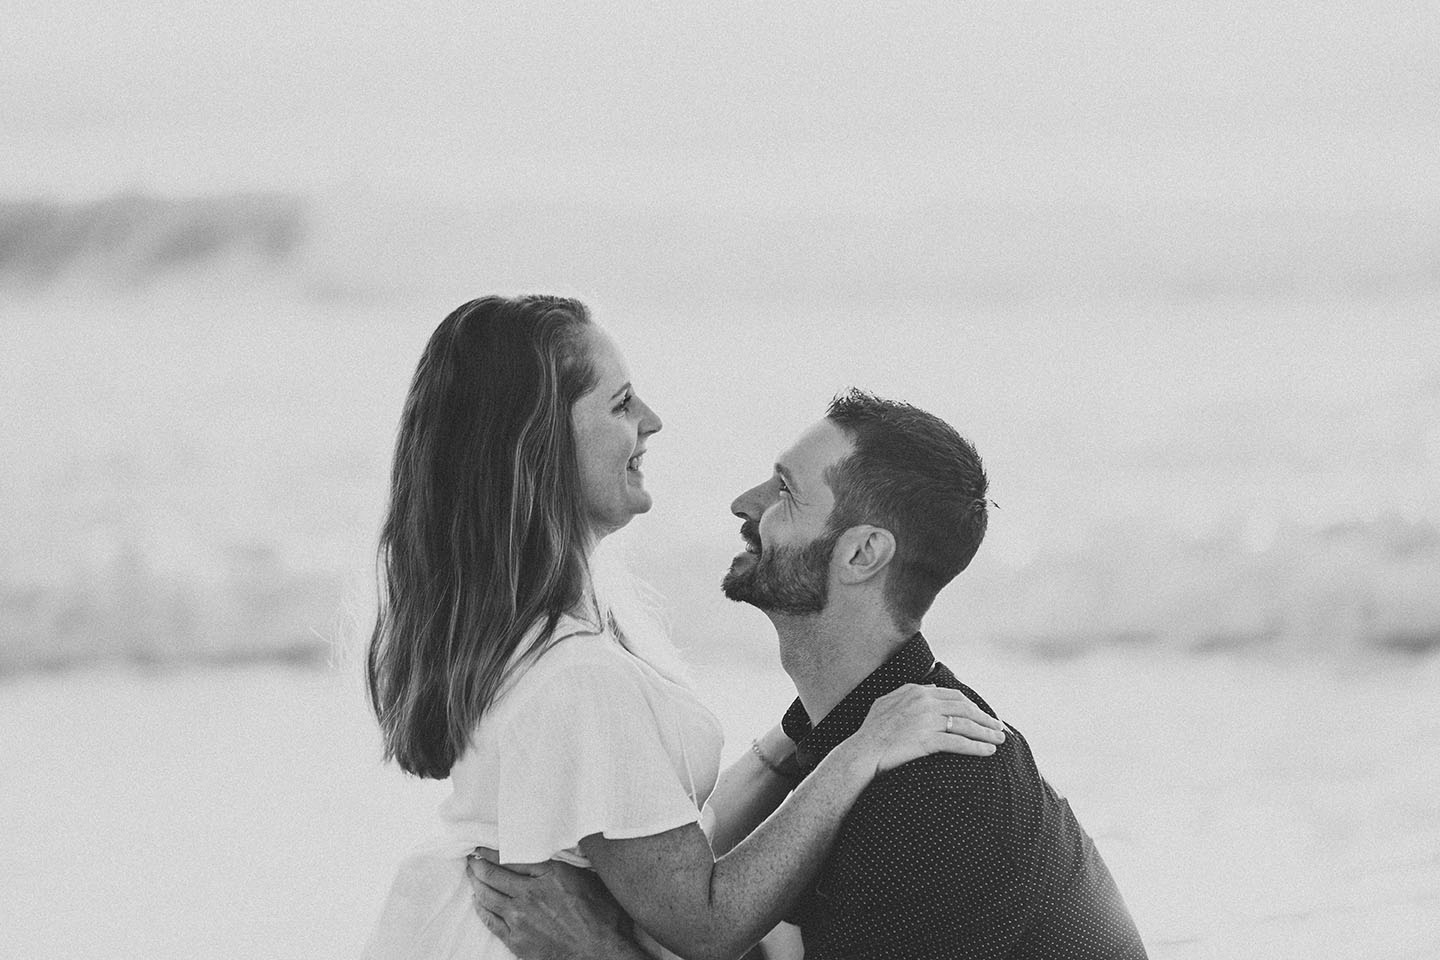 Engagement Photography - couple embracing on beach at sunset black and white